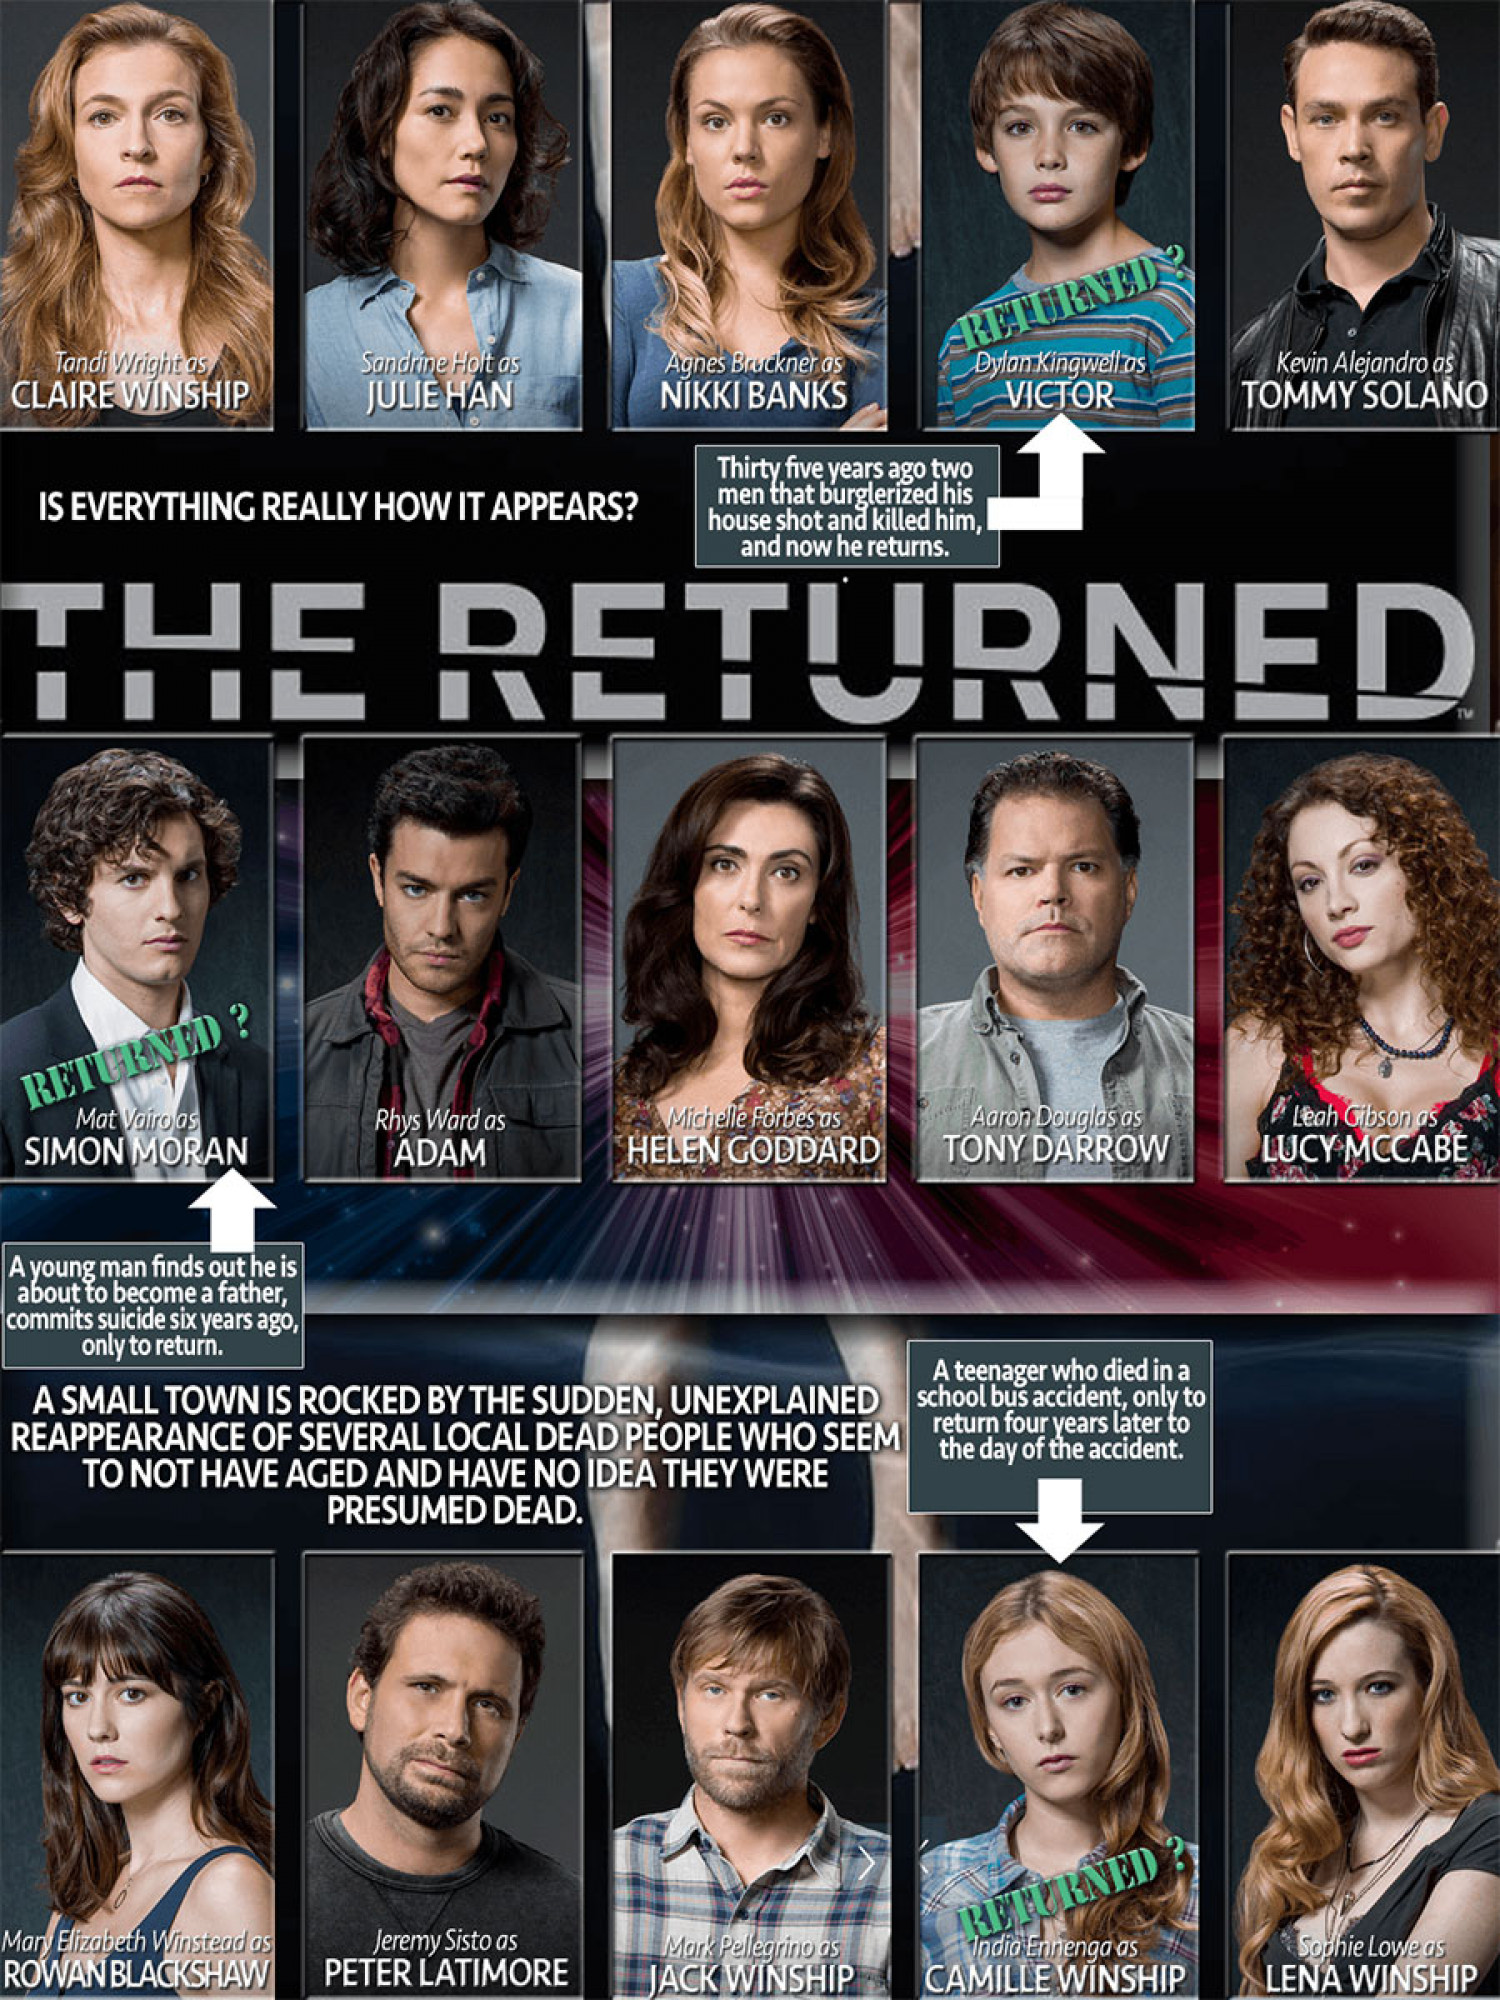 the returned would you freak out if a dead family member returned